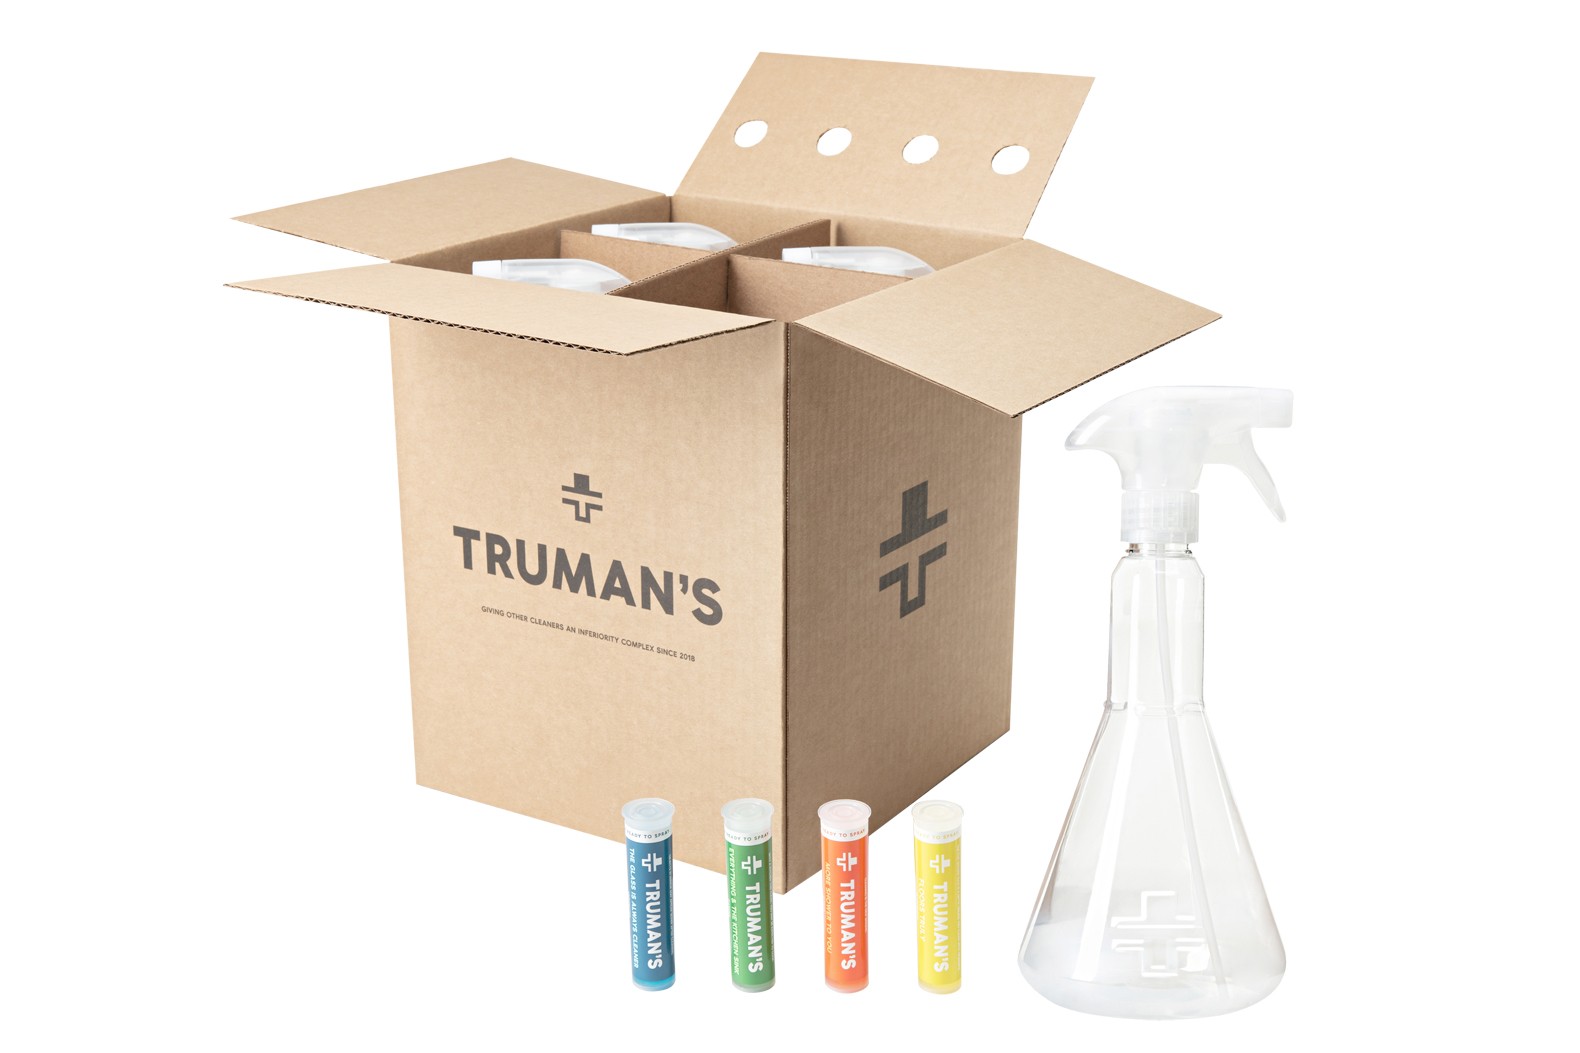 Truman's wants to eliminate single-use plastics in the household cleaner industry